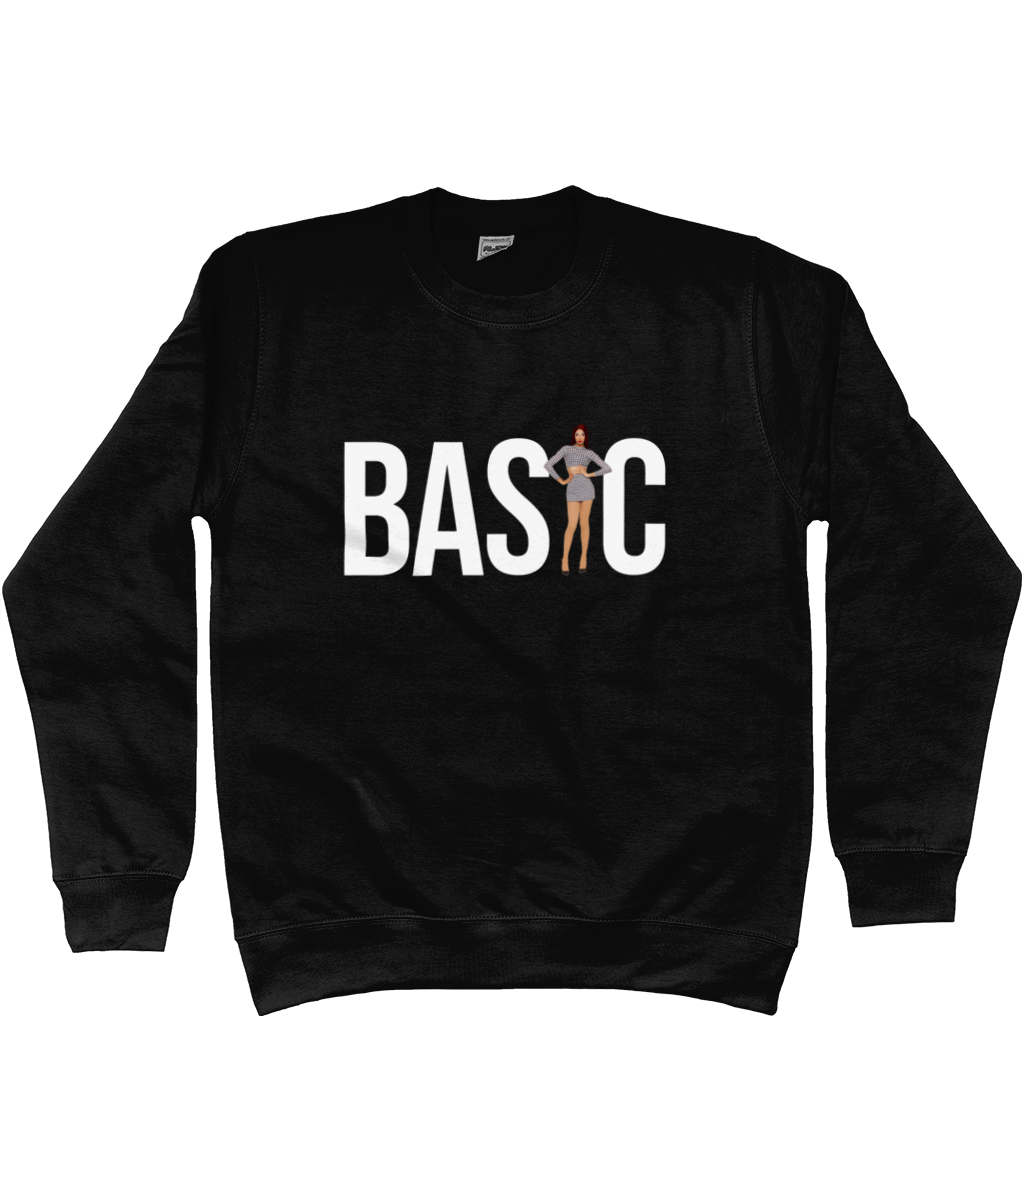 Tia Kofi - Official Merch - Basic Black Sweater